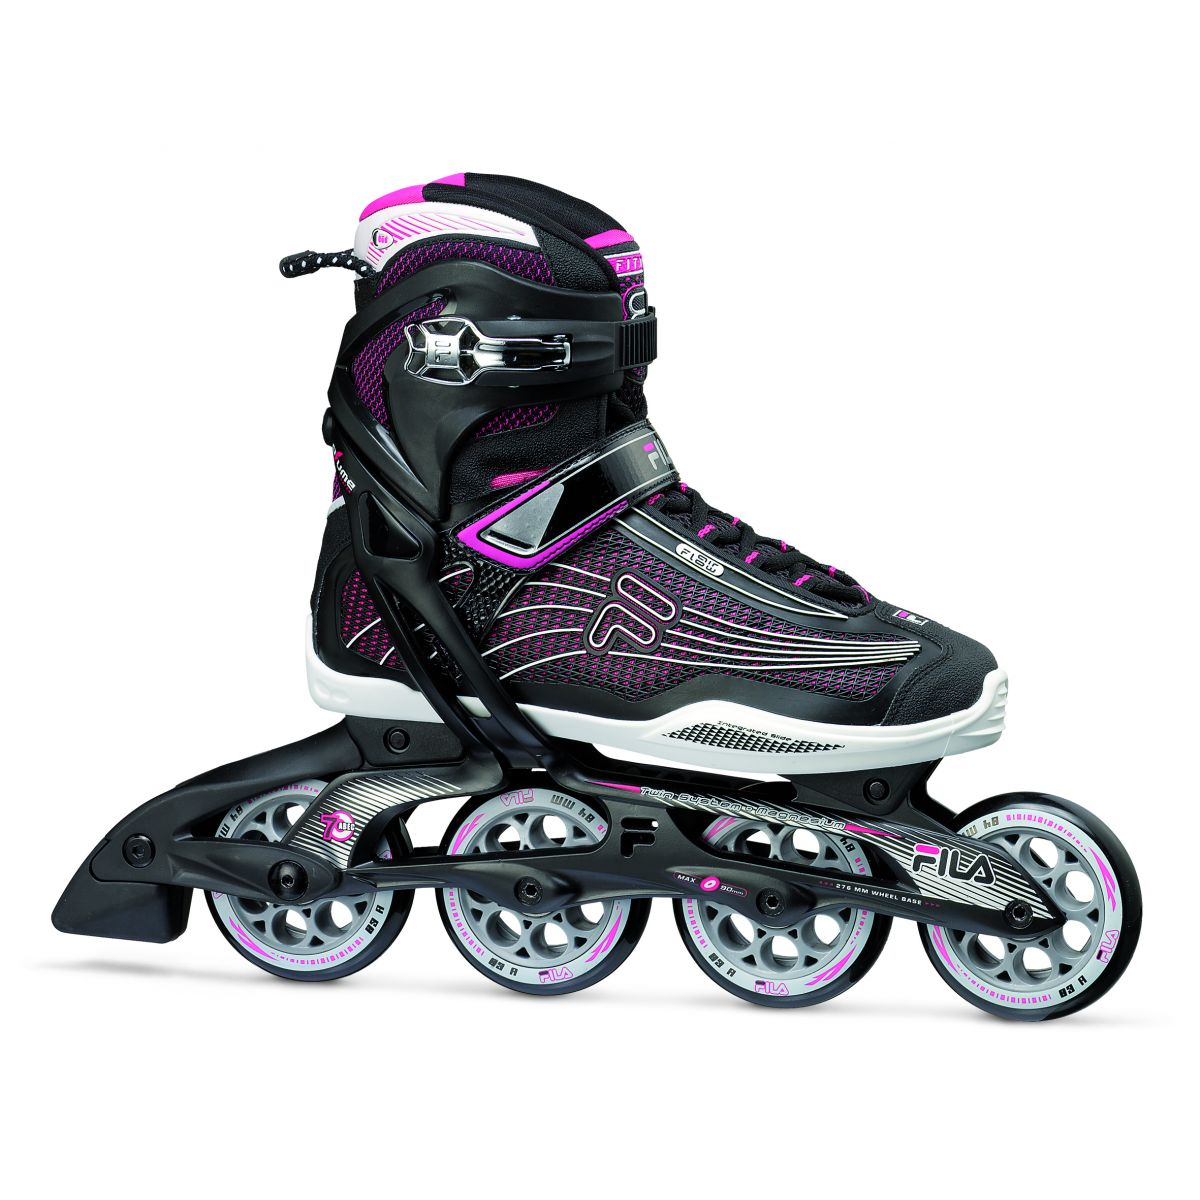 Patins Fila Plume Lady 84mm/83A